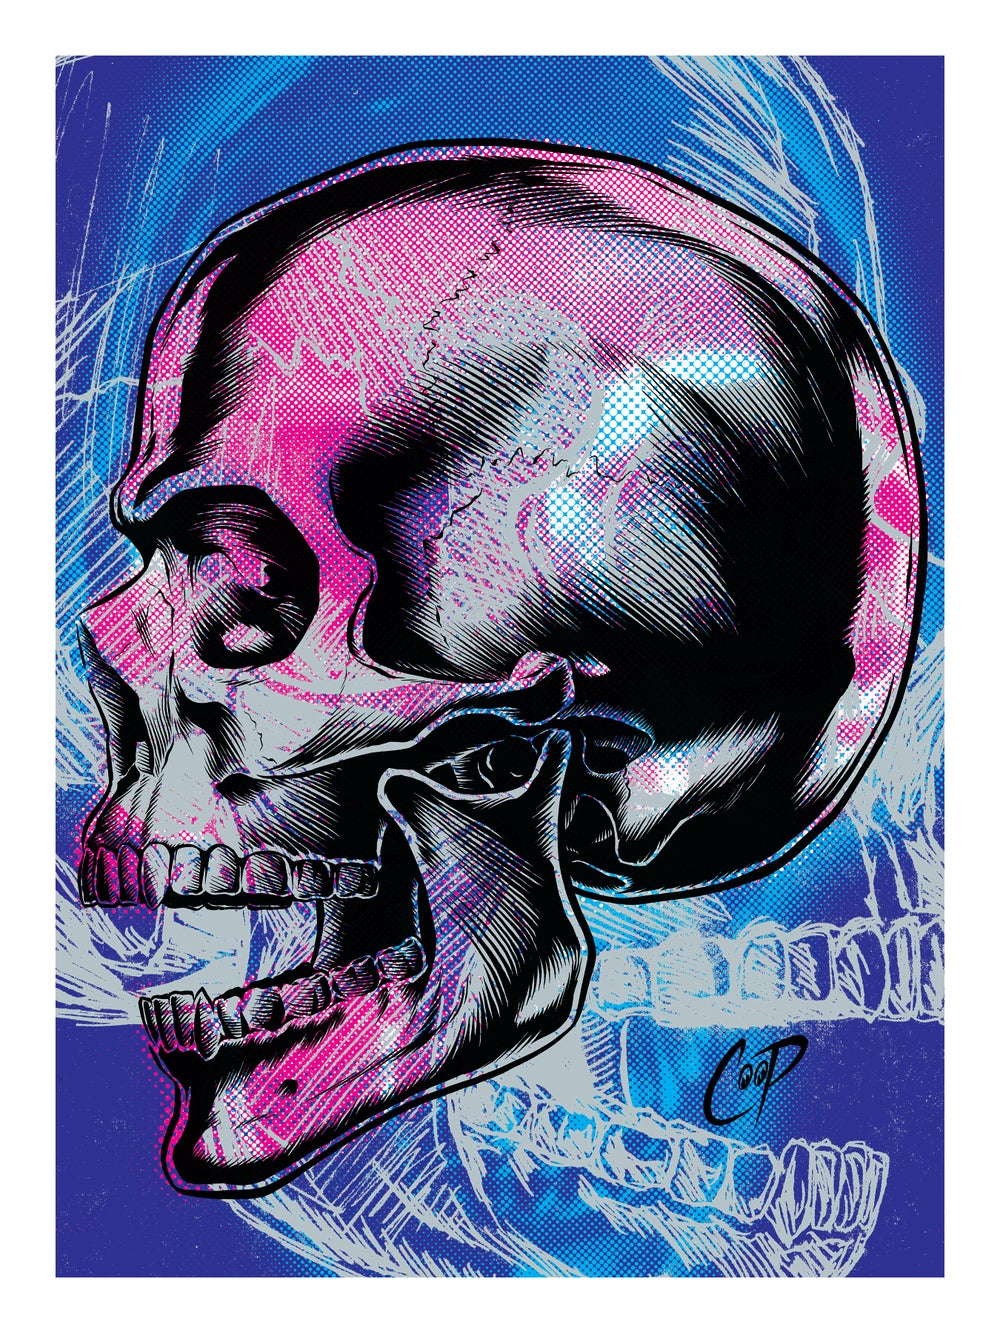 Image of MEMENTO MORI (Version Two) silkscreen print